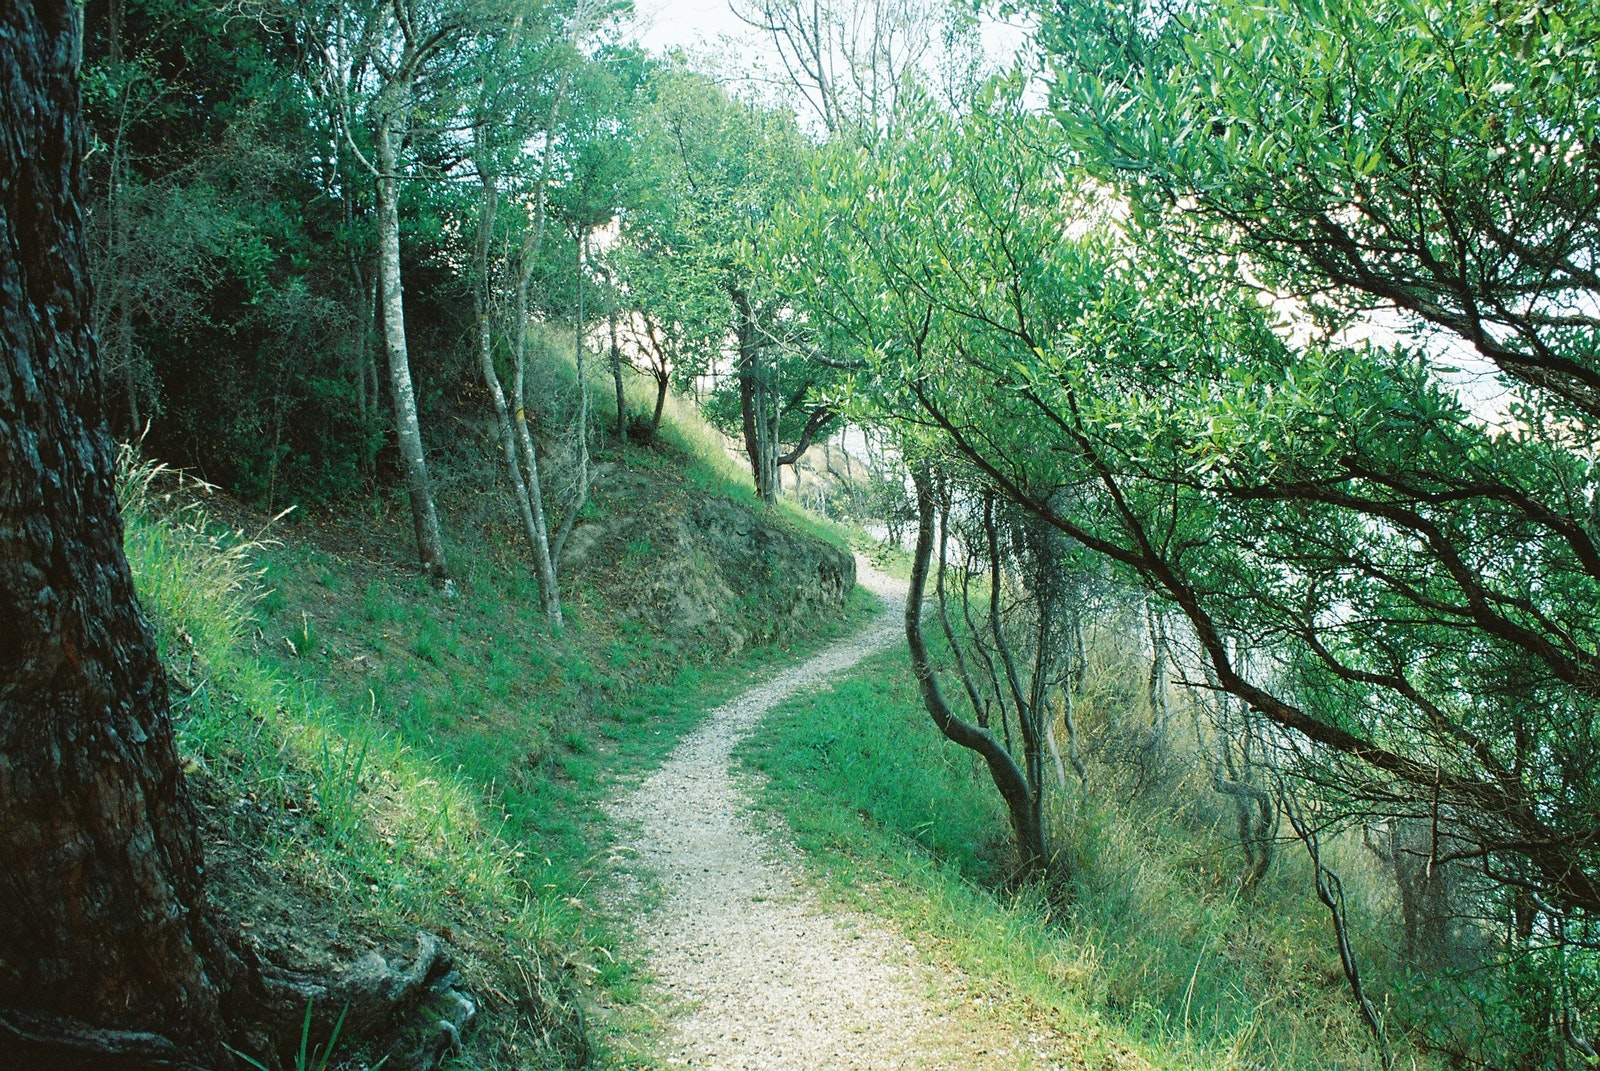 A path winding through very green trees